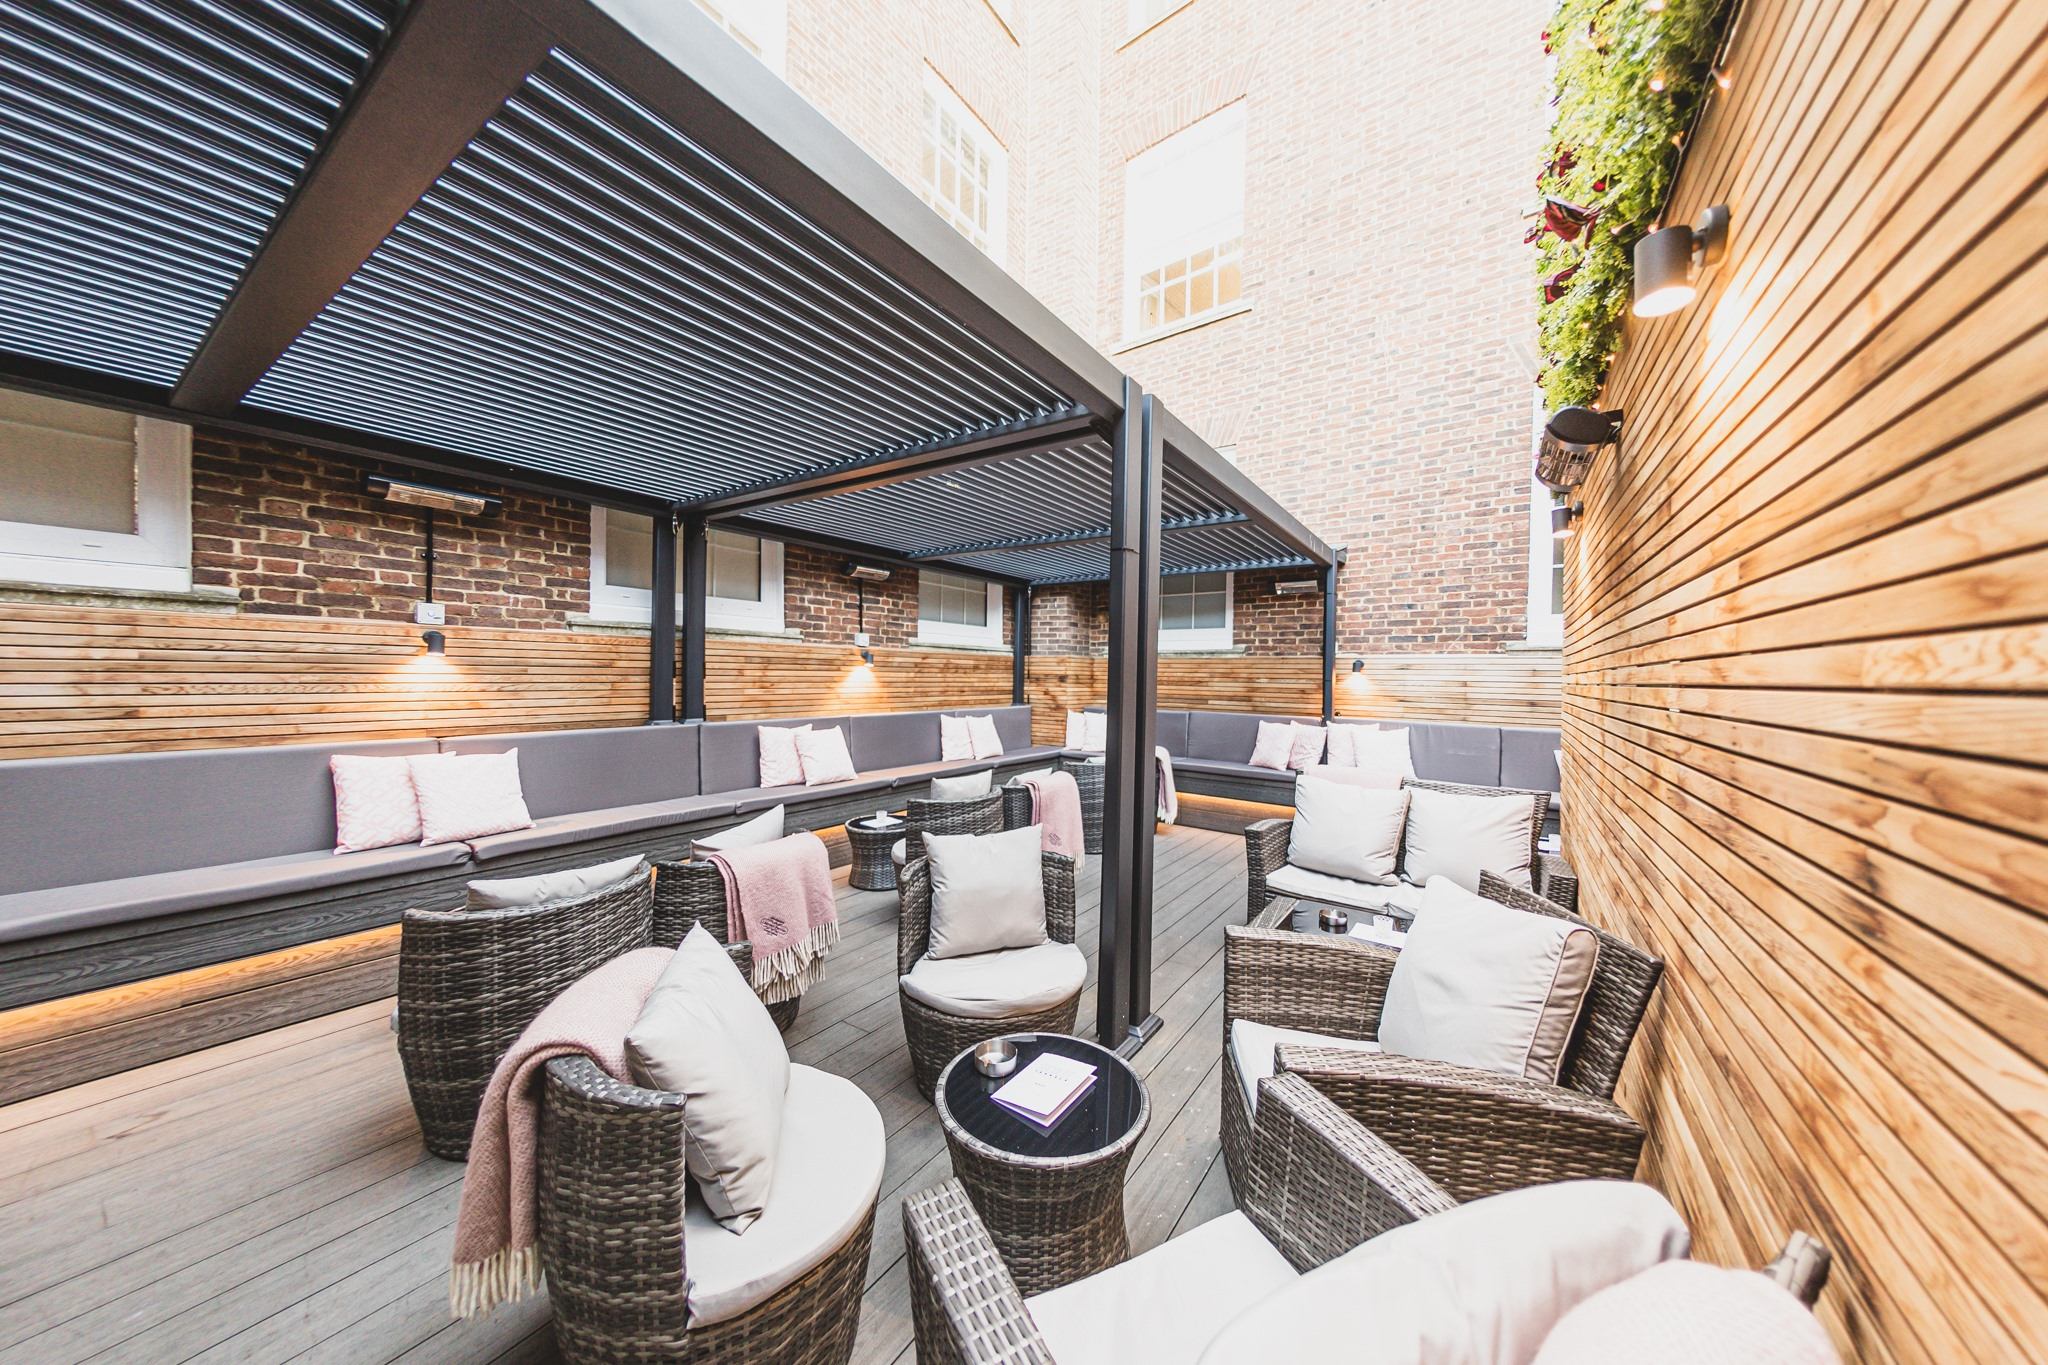 The roof terrace at Socialite Brighton, brown comfy chairs and sofas with white pillows and covers